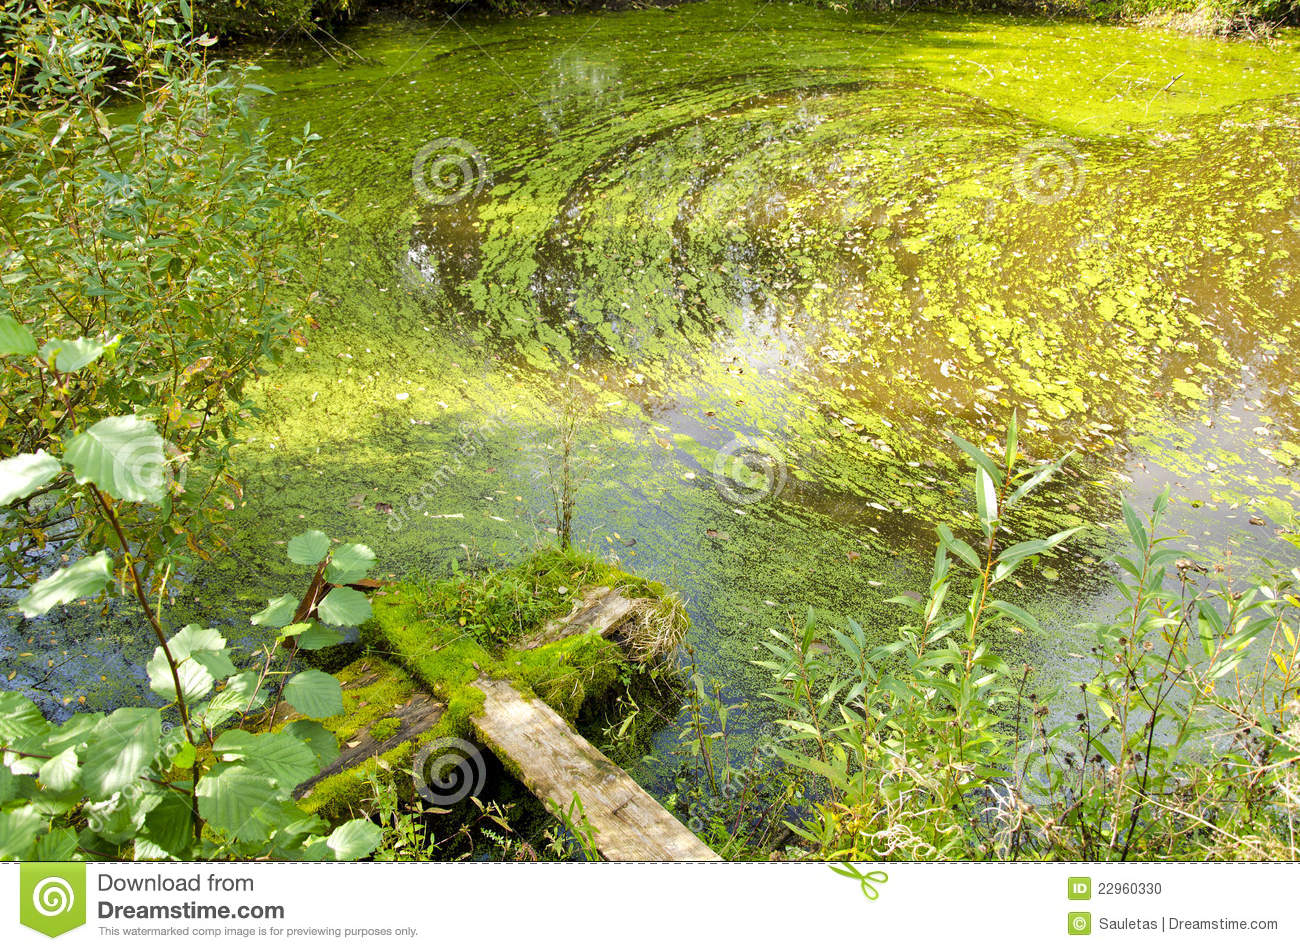 Agal bloom pond forest green water broken bridge stock for Green water in pond